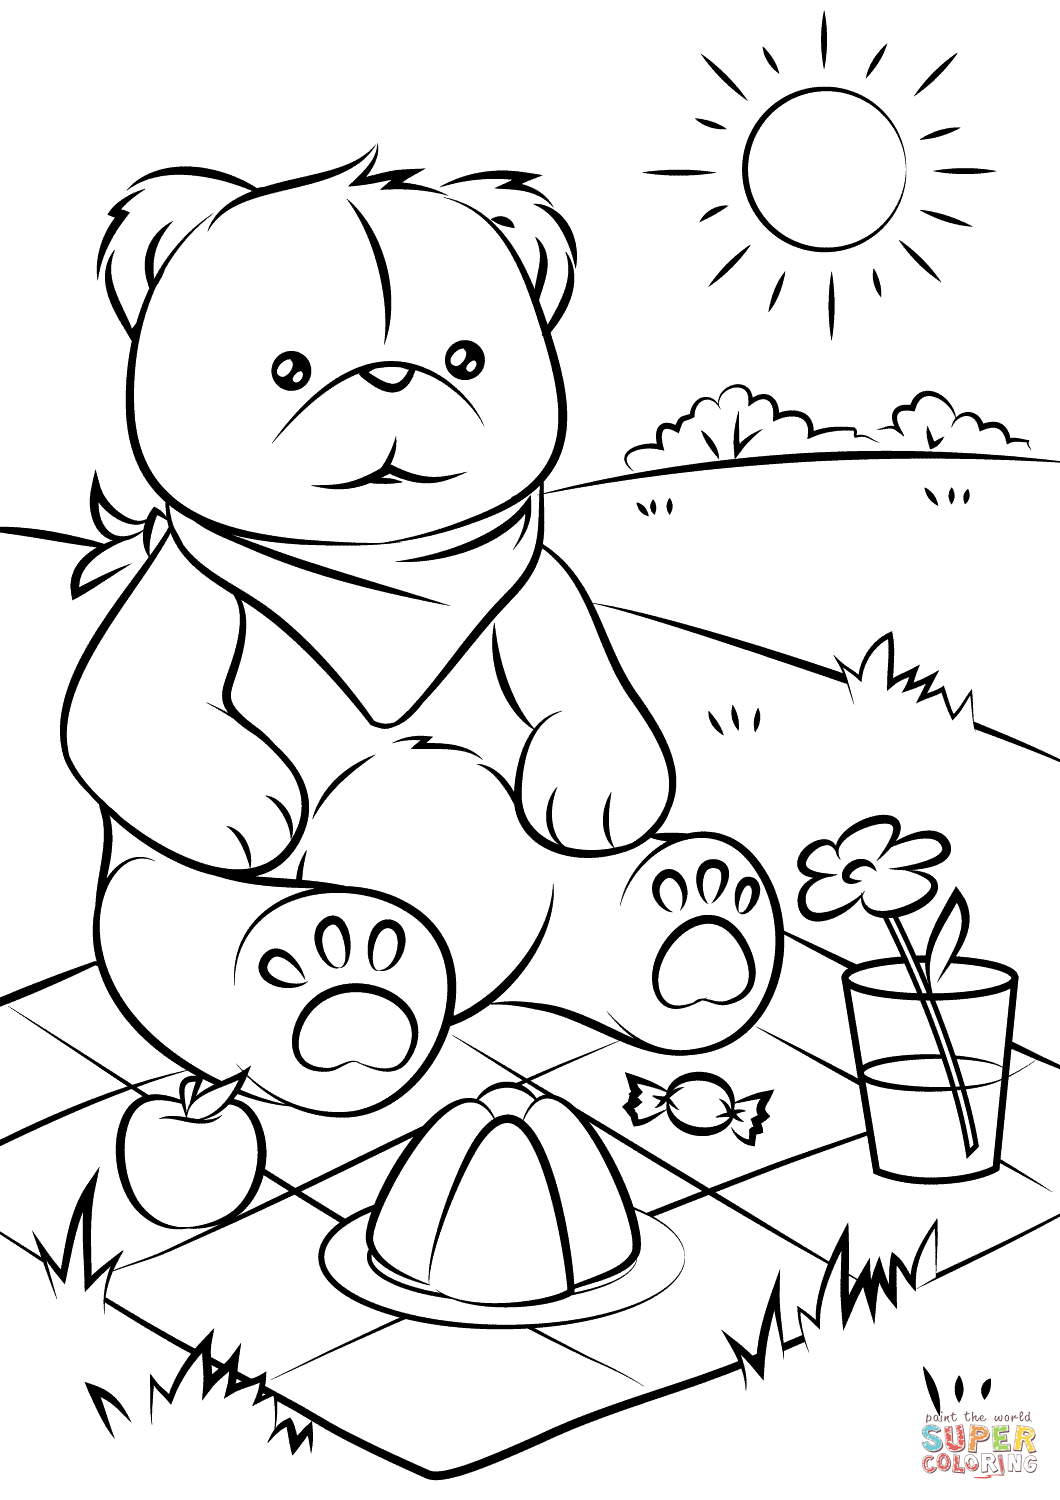 teddy bear picnic coloring pages teddy bear picnic coloring pages for kids it39s a teddy teddy picnic bear coloring pages